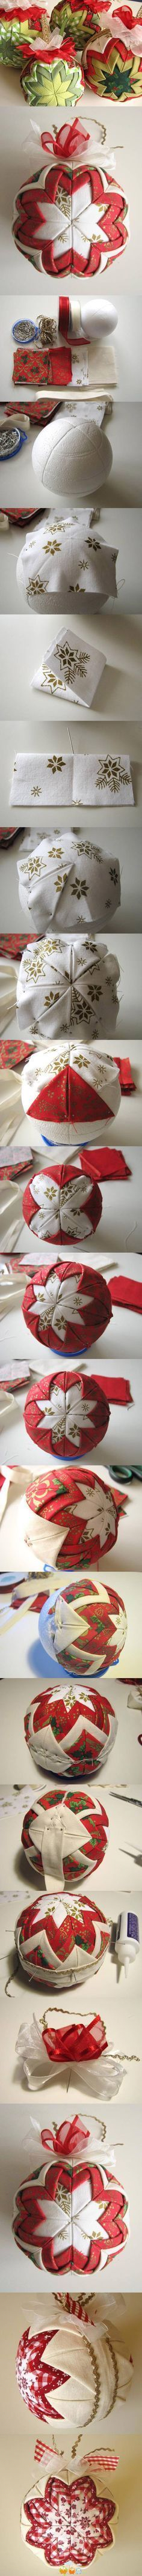 I am definately going to do this to add to all of my Christmas Decorations and Artificial Foliage from Shelf Edge - www.shelf-edge.co.uk.                                                                                                                                                      More